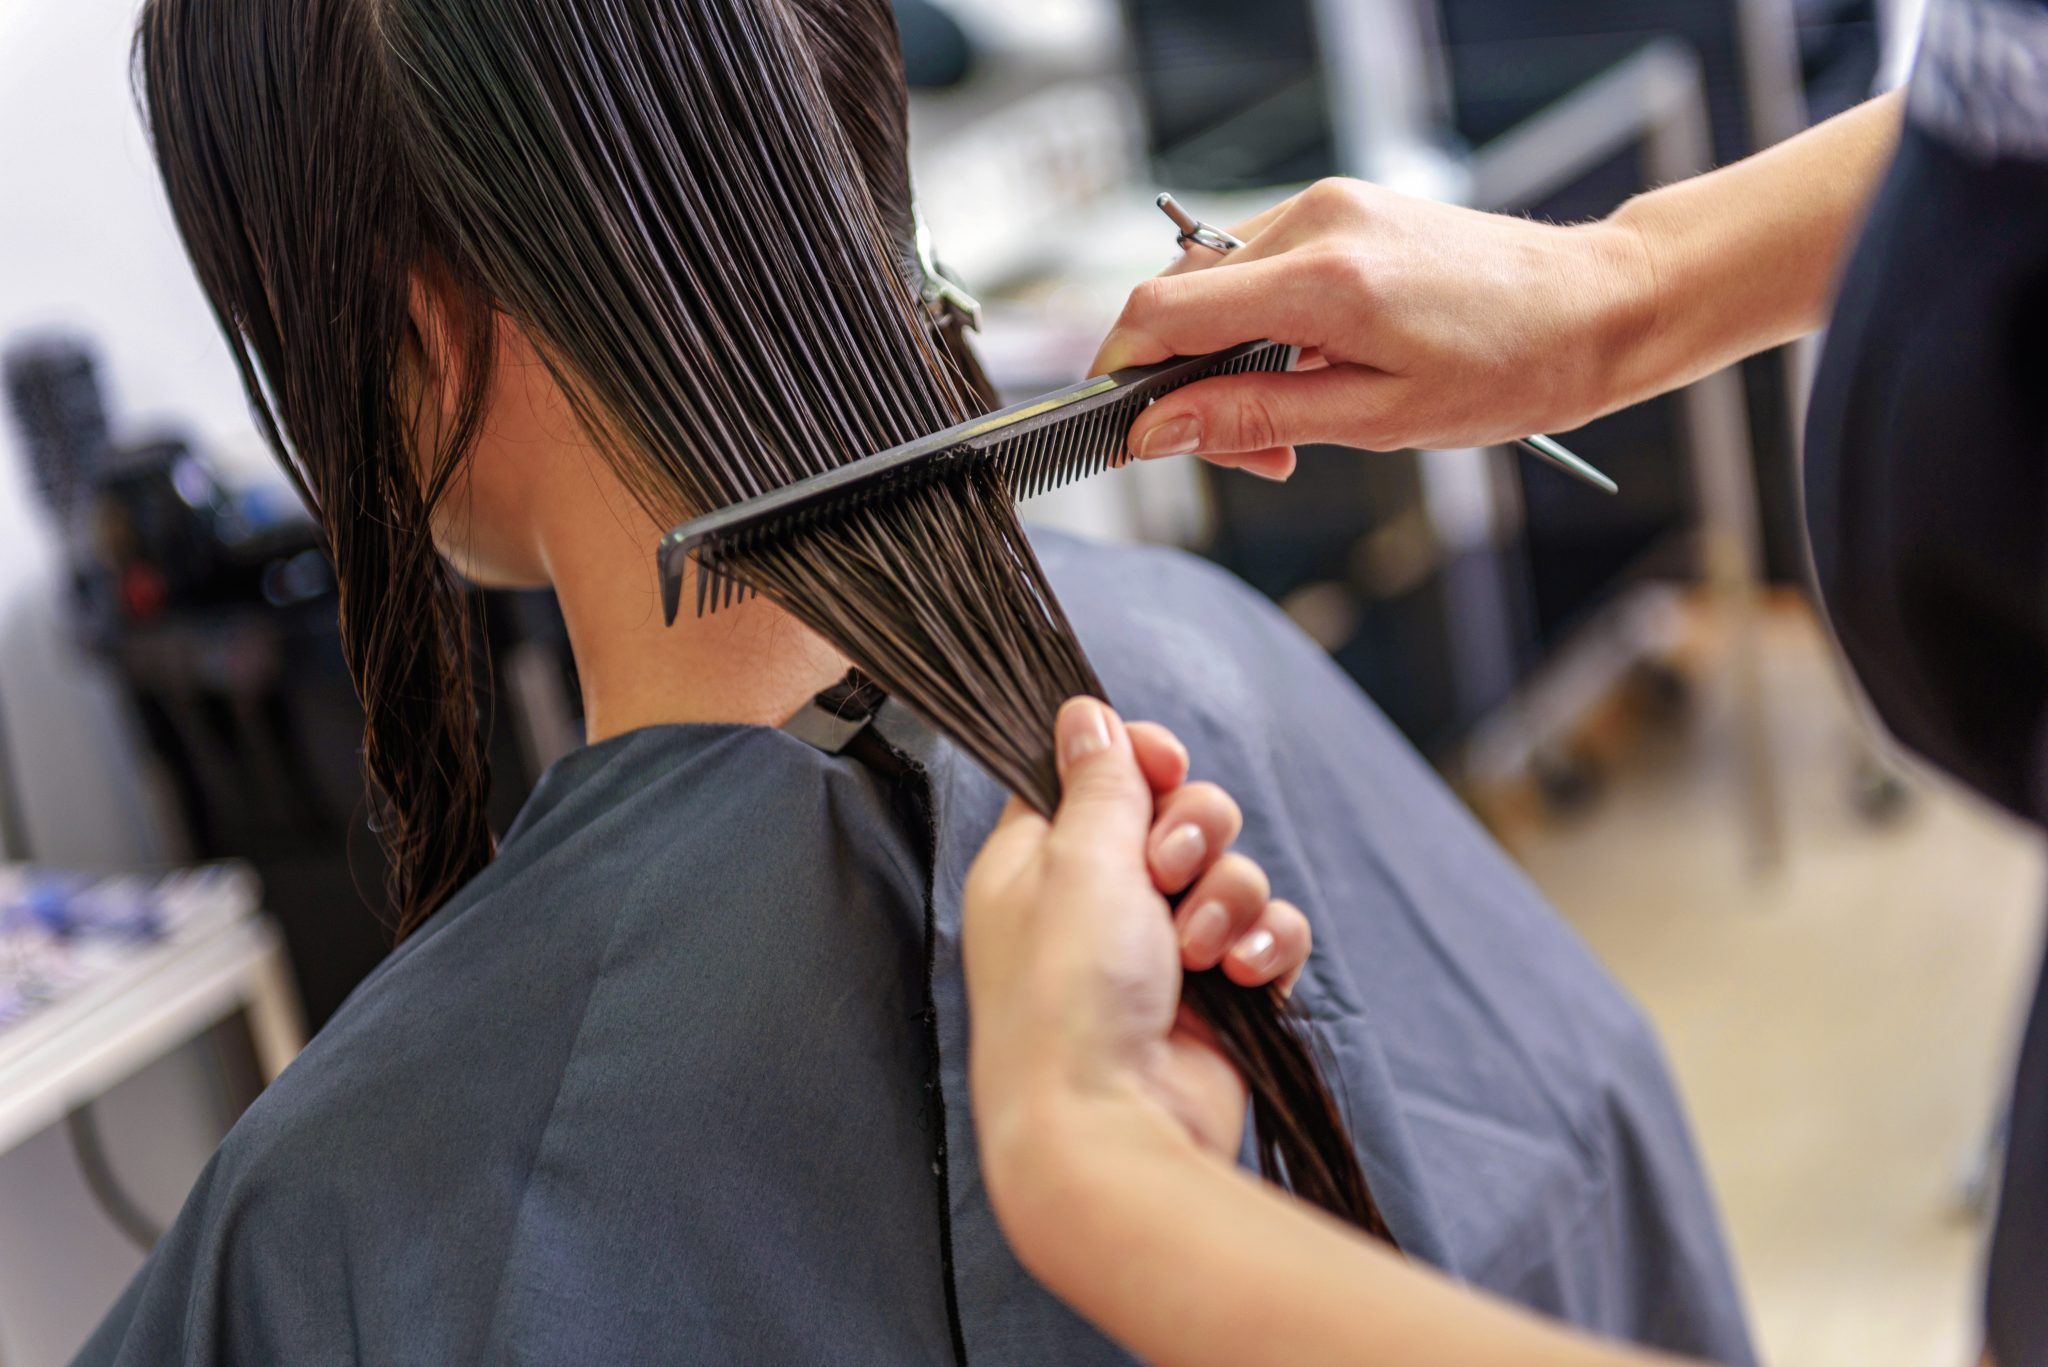 close up of hairdresser combing wet hair of a woman